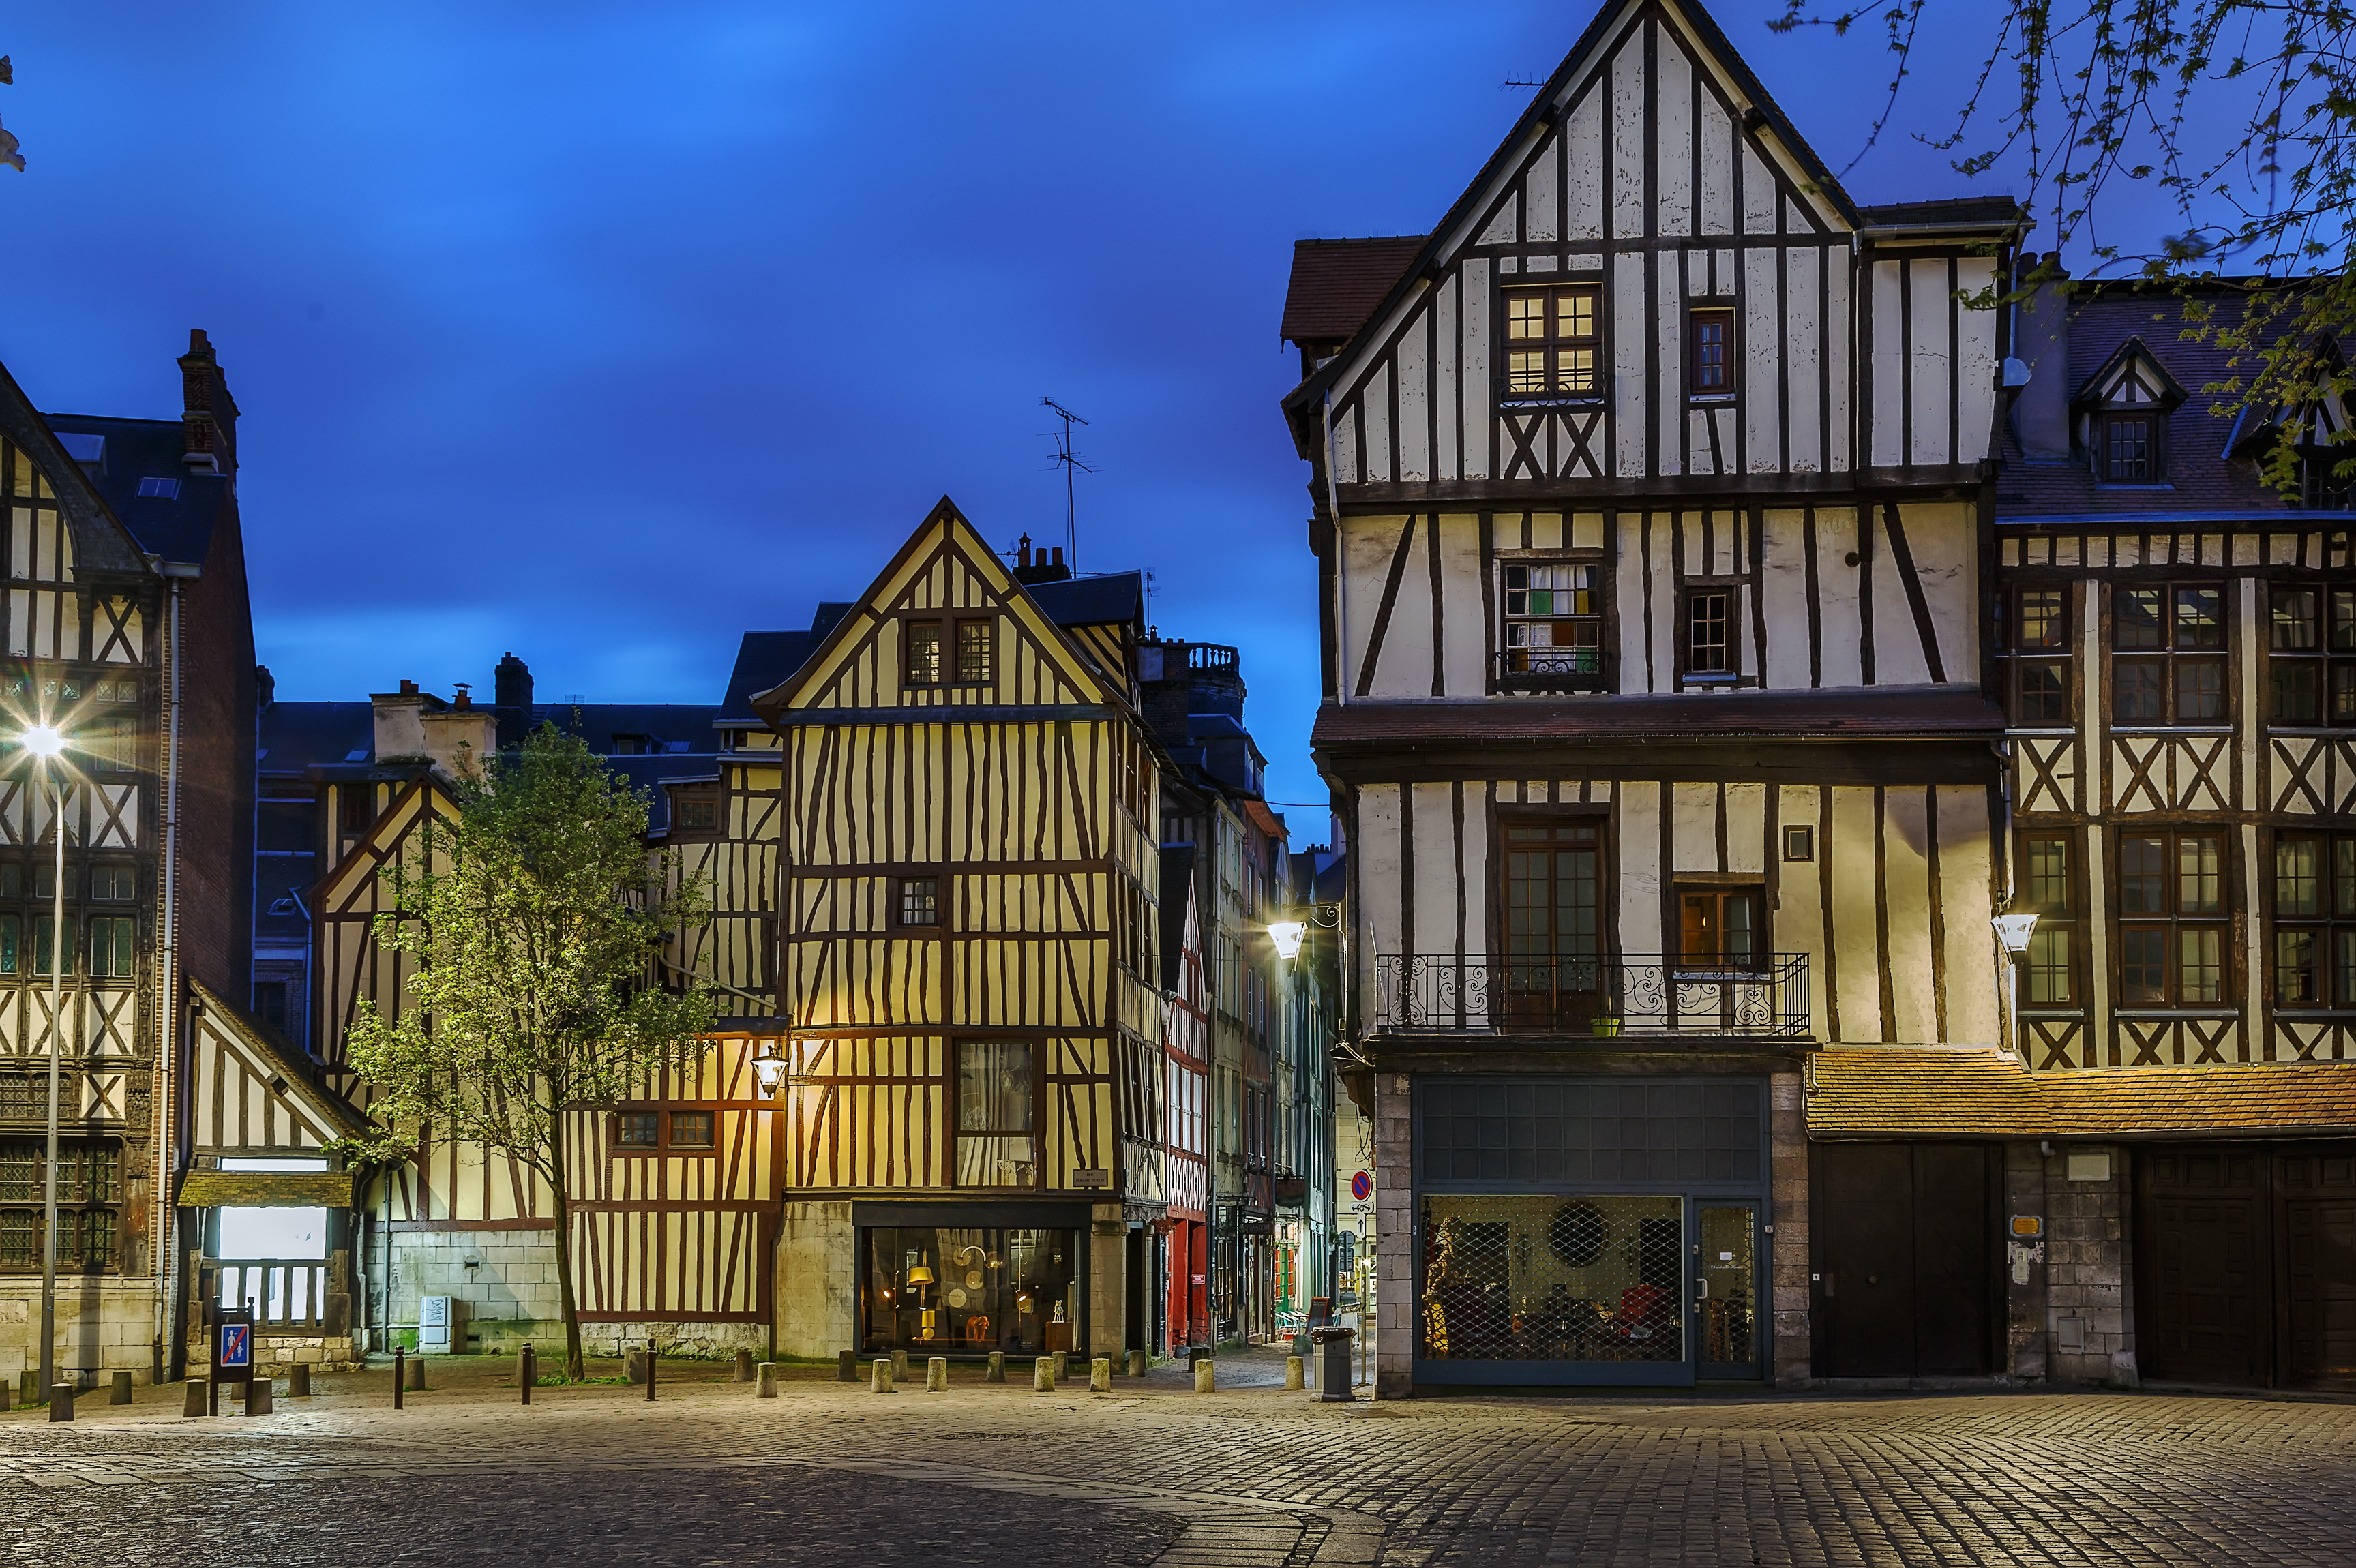 half-timbered houses in France.